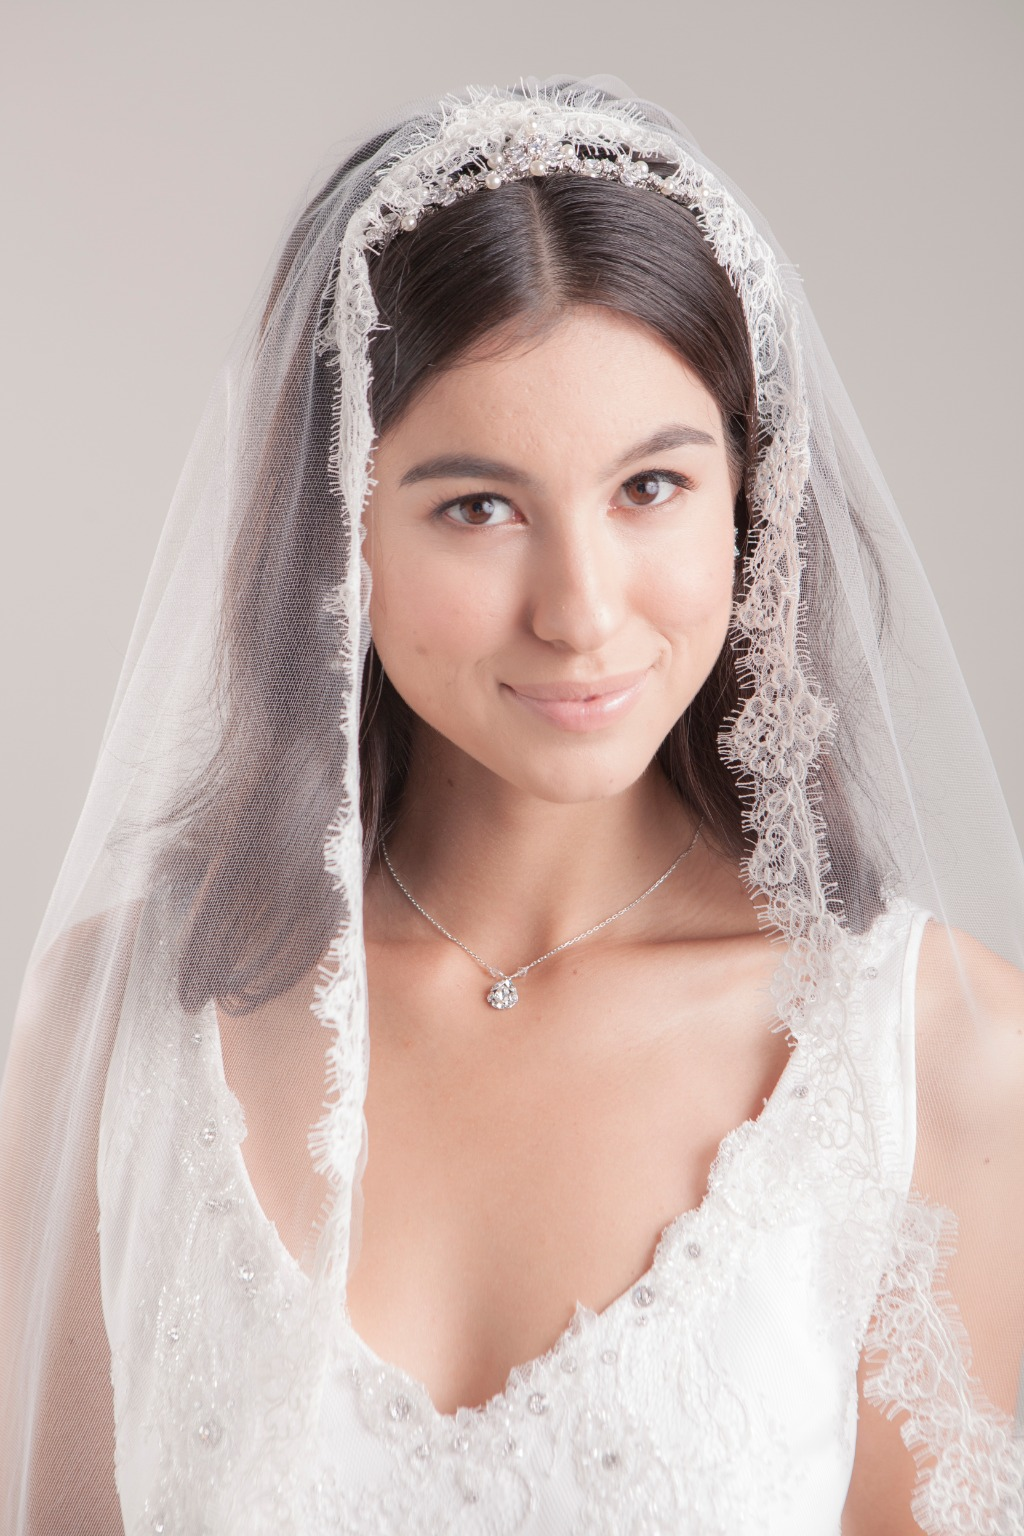 Do you love lace but want a modern, airy look for your wedding veil? Hayley may be your perfect match!